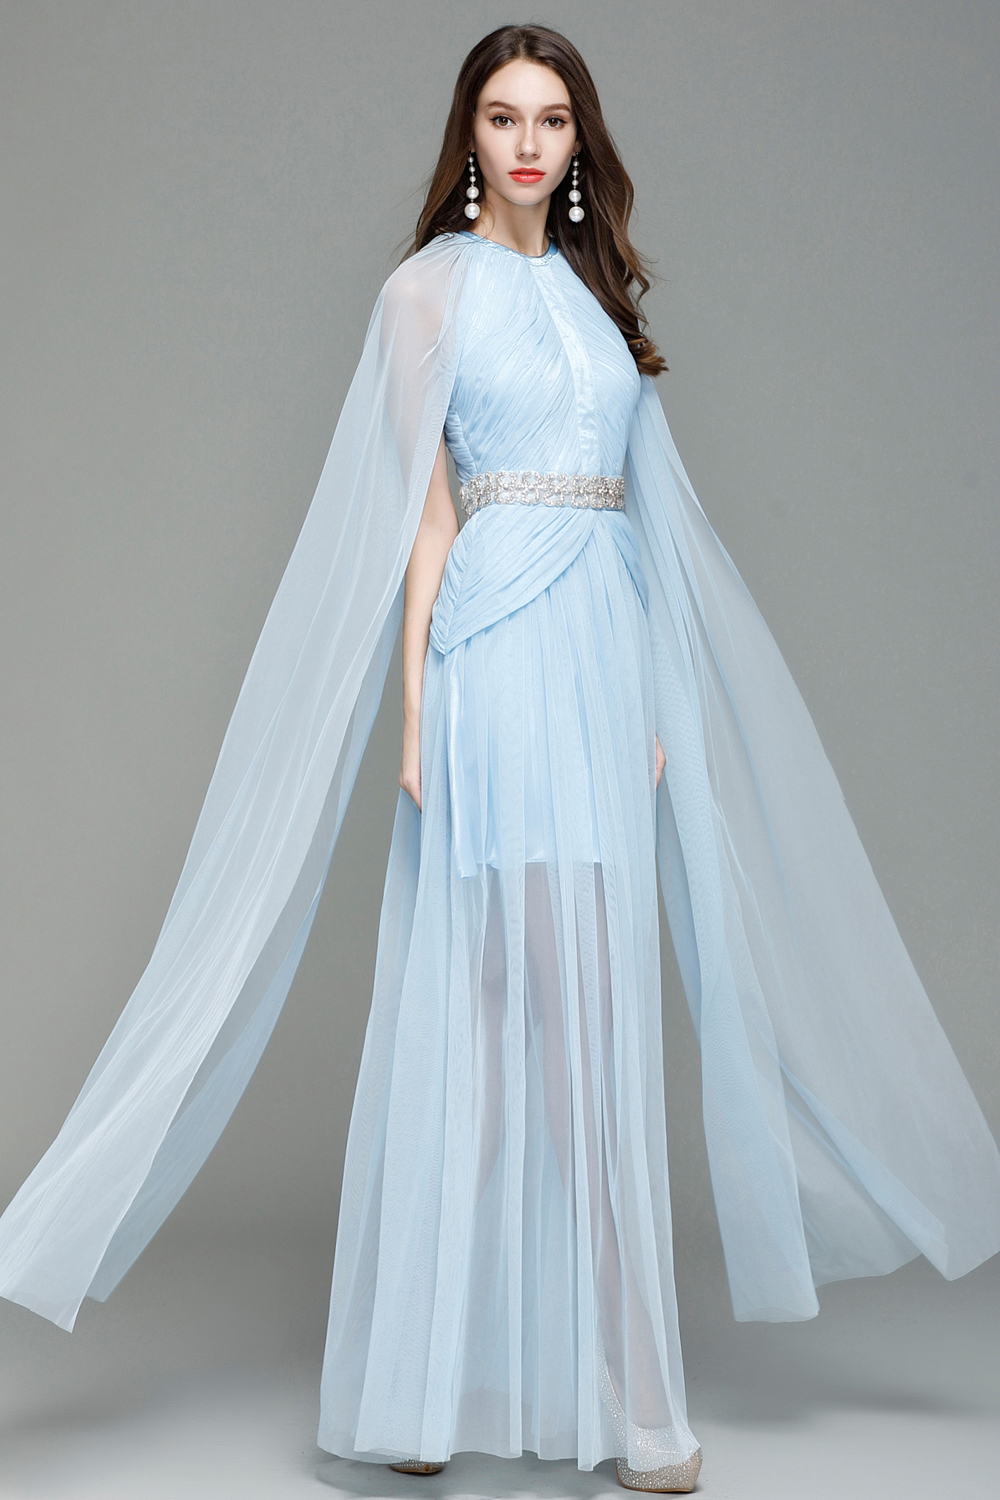 Compare Prices on Prom Long Gowns- Online Shopping/Buy Low Price ...